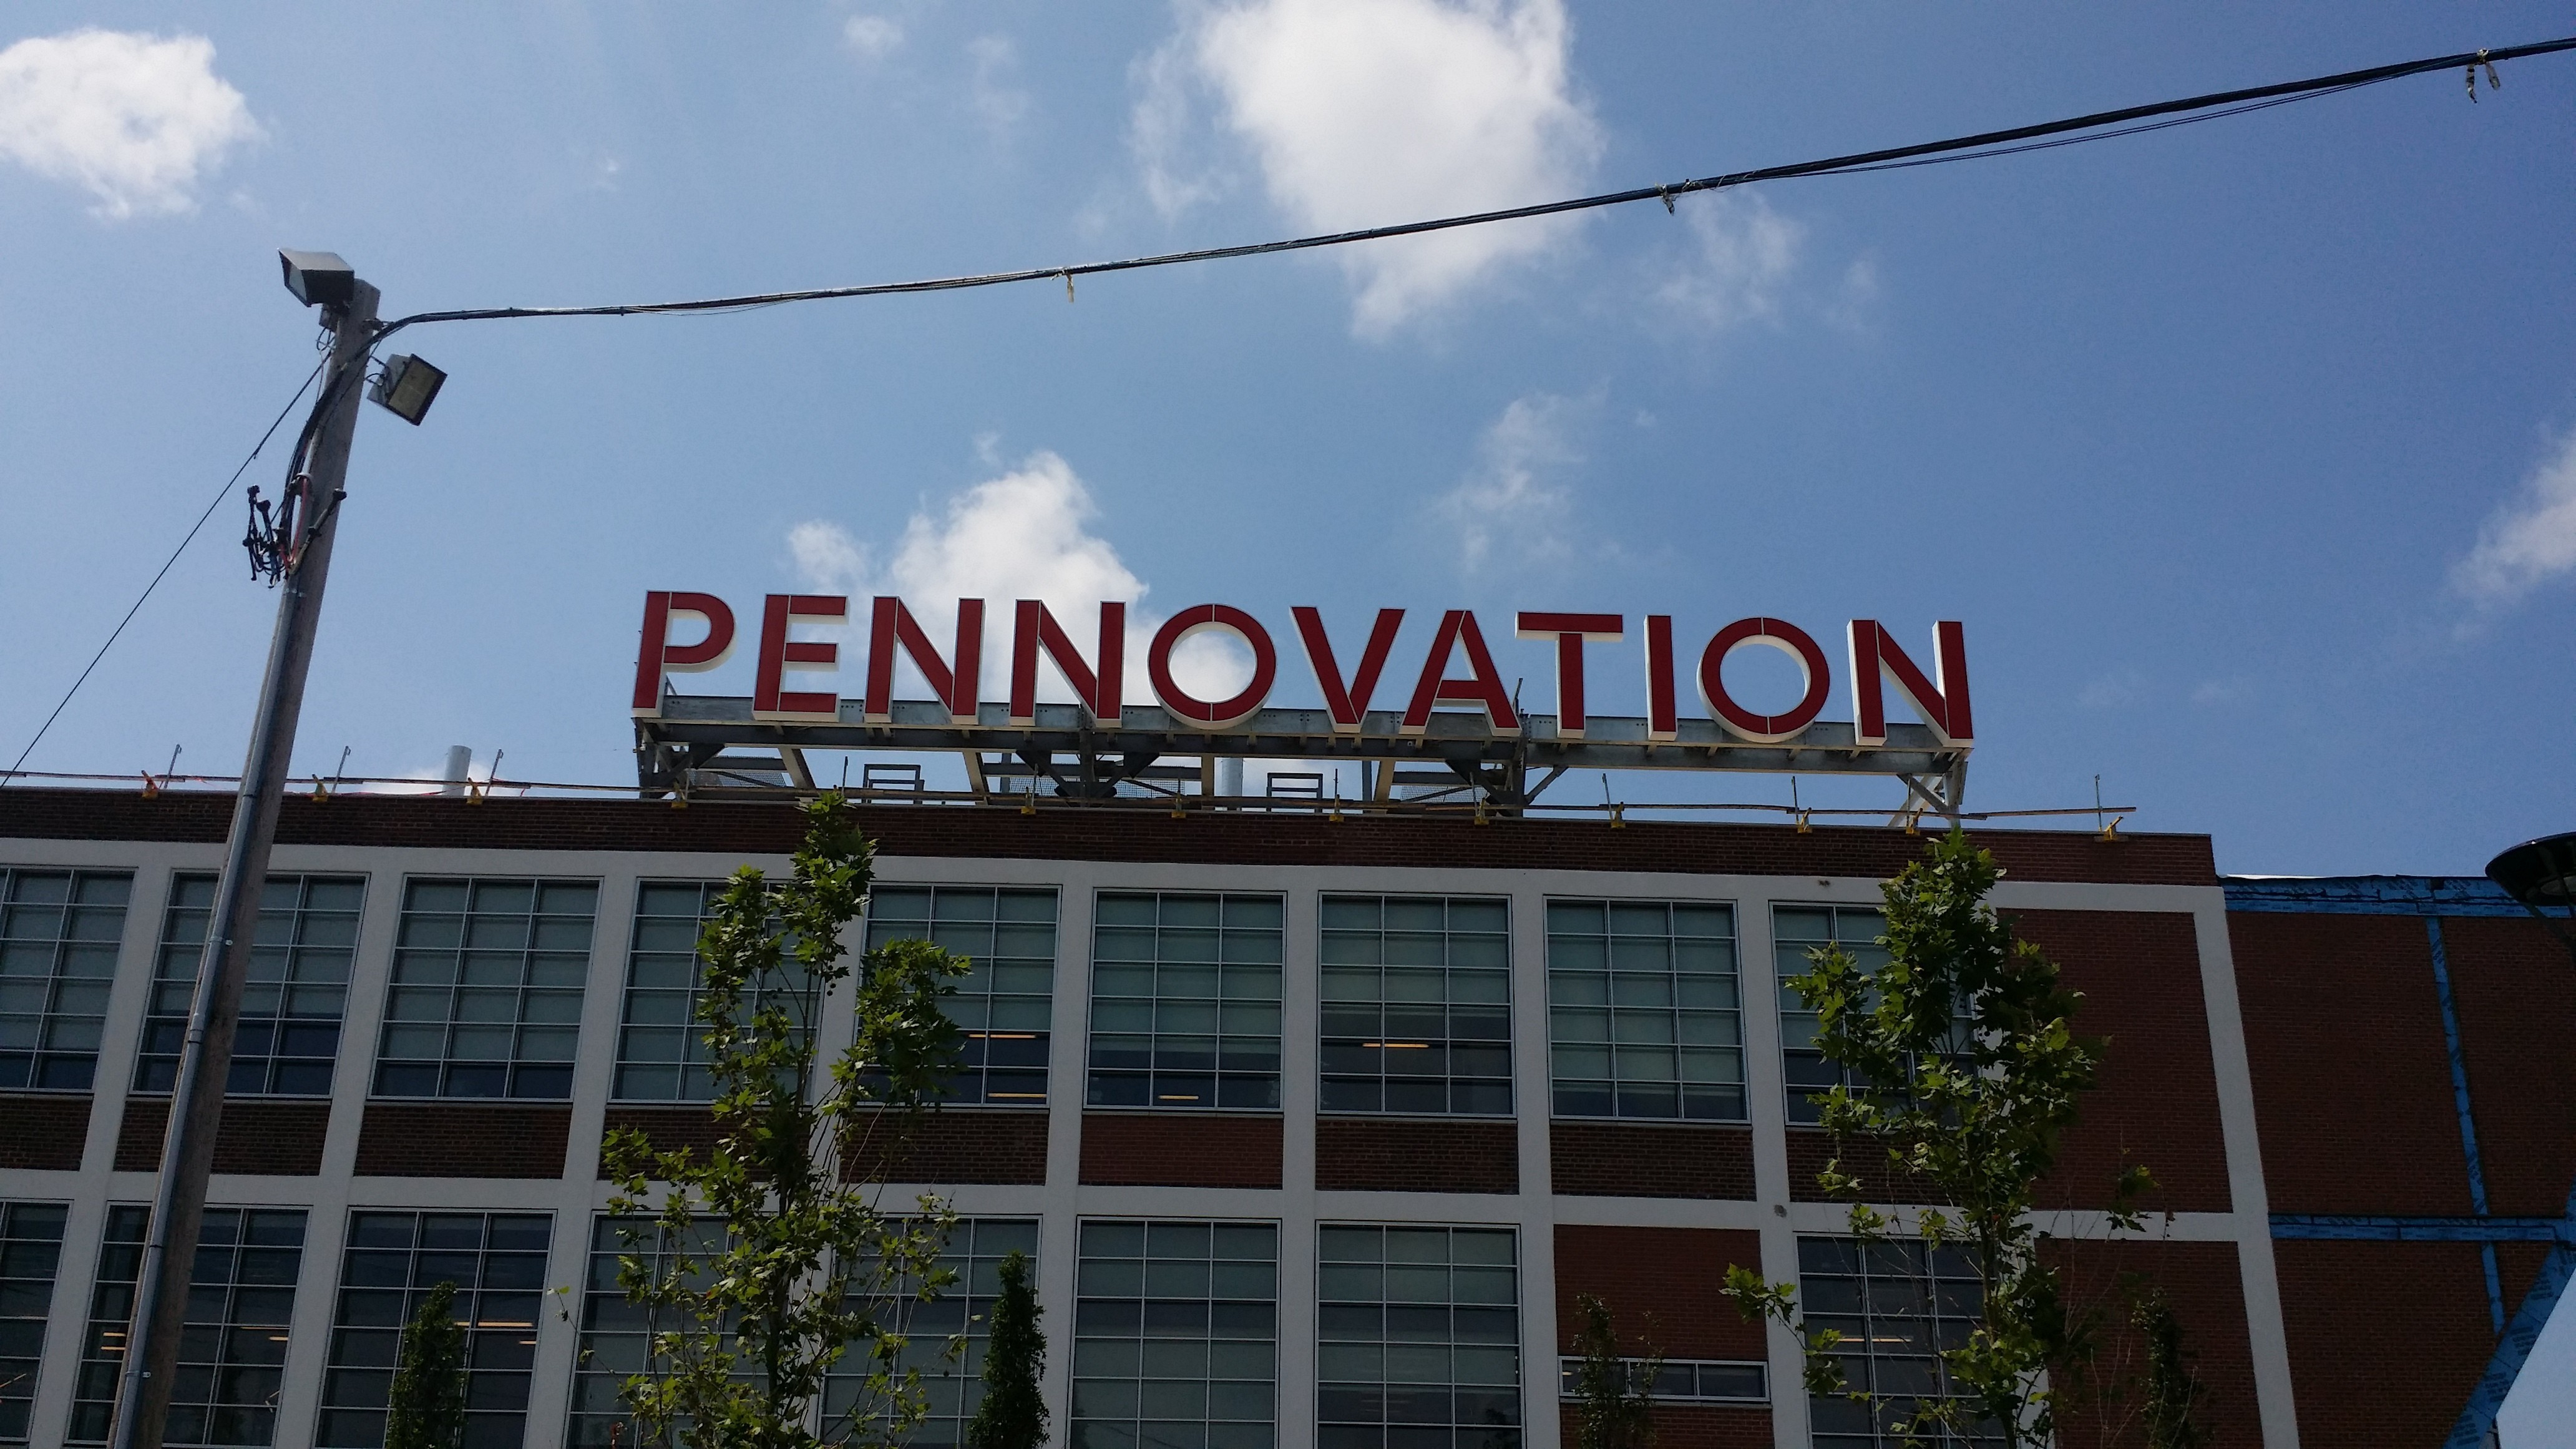 Pennovation lettering on roof as seen from sidewalk